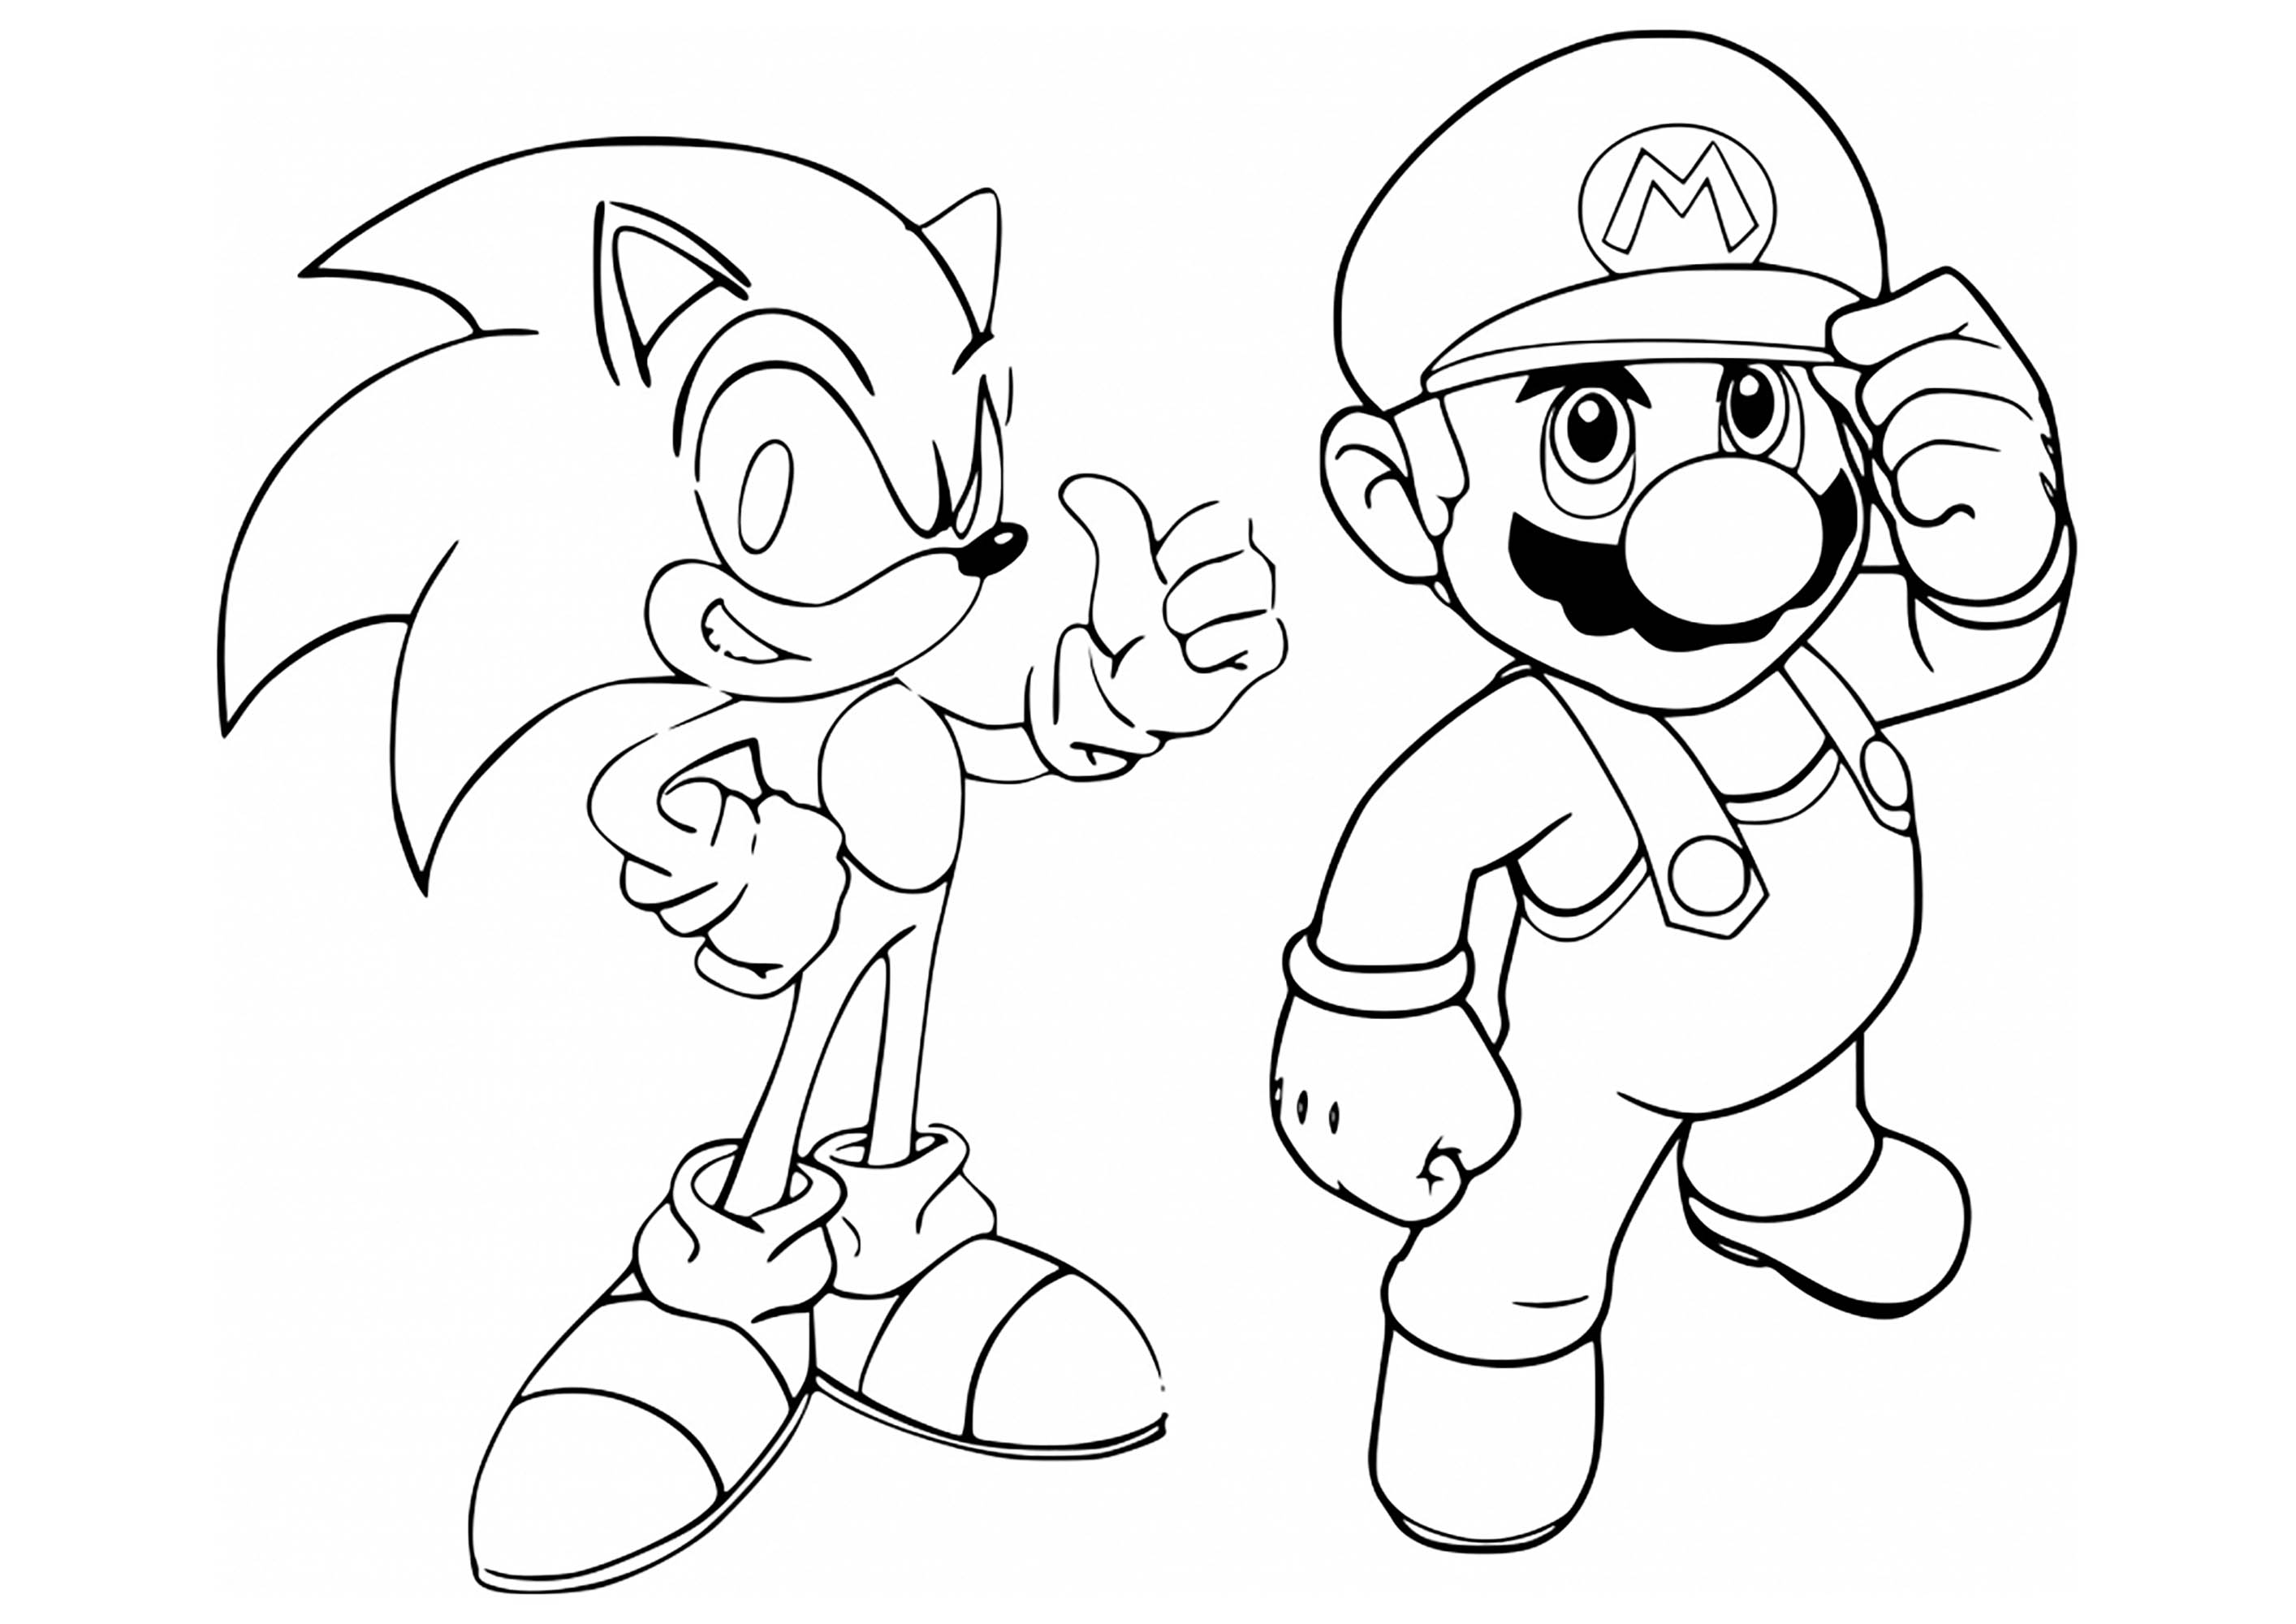 mario and sonic coloring pages mario vs sonic pages coloring pages sonic coloring mario pages and